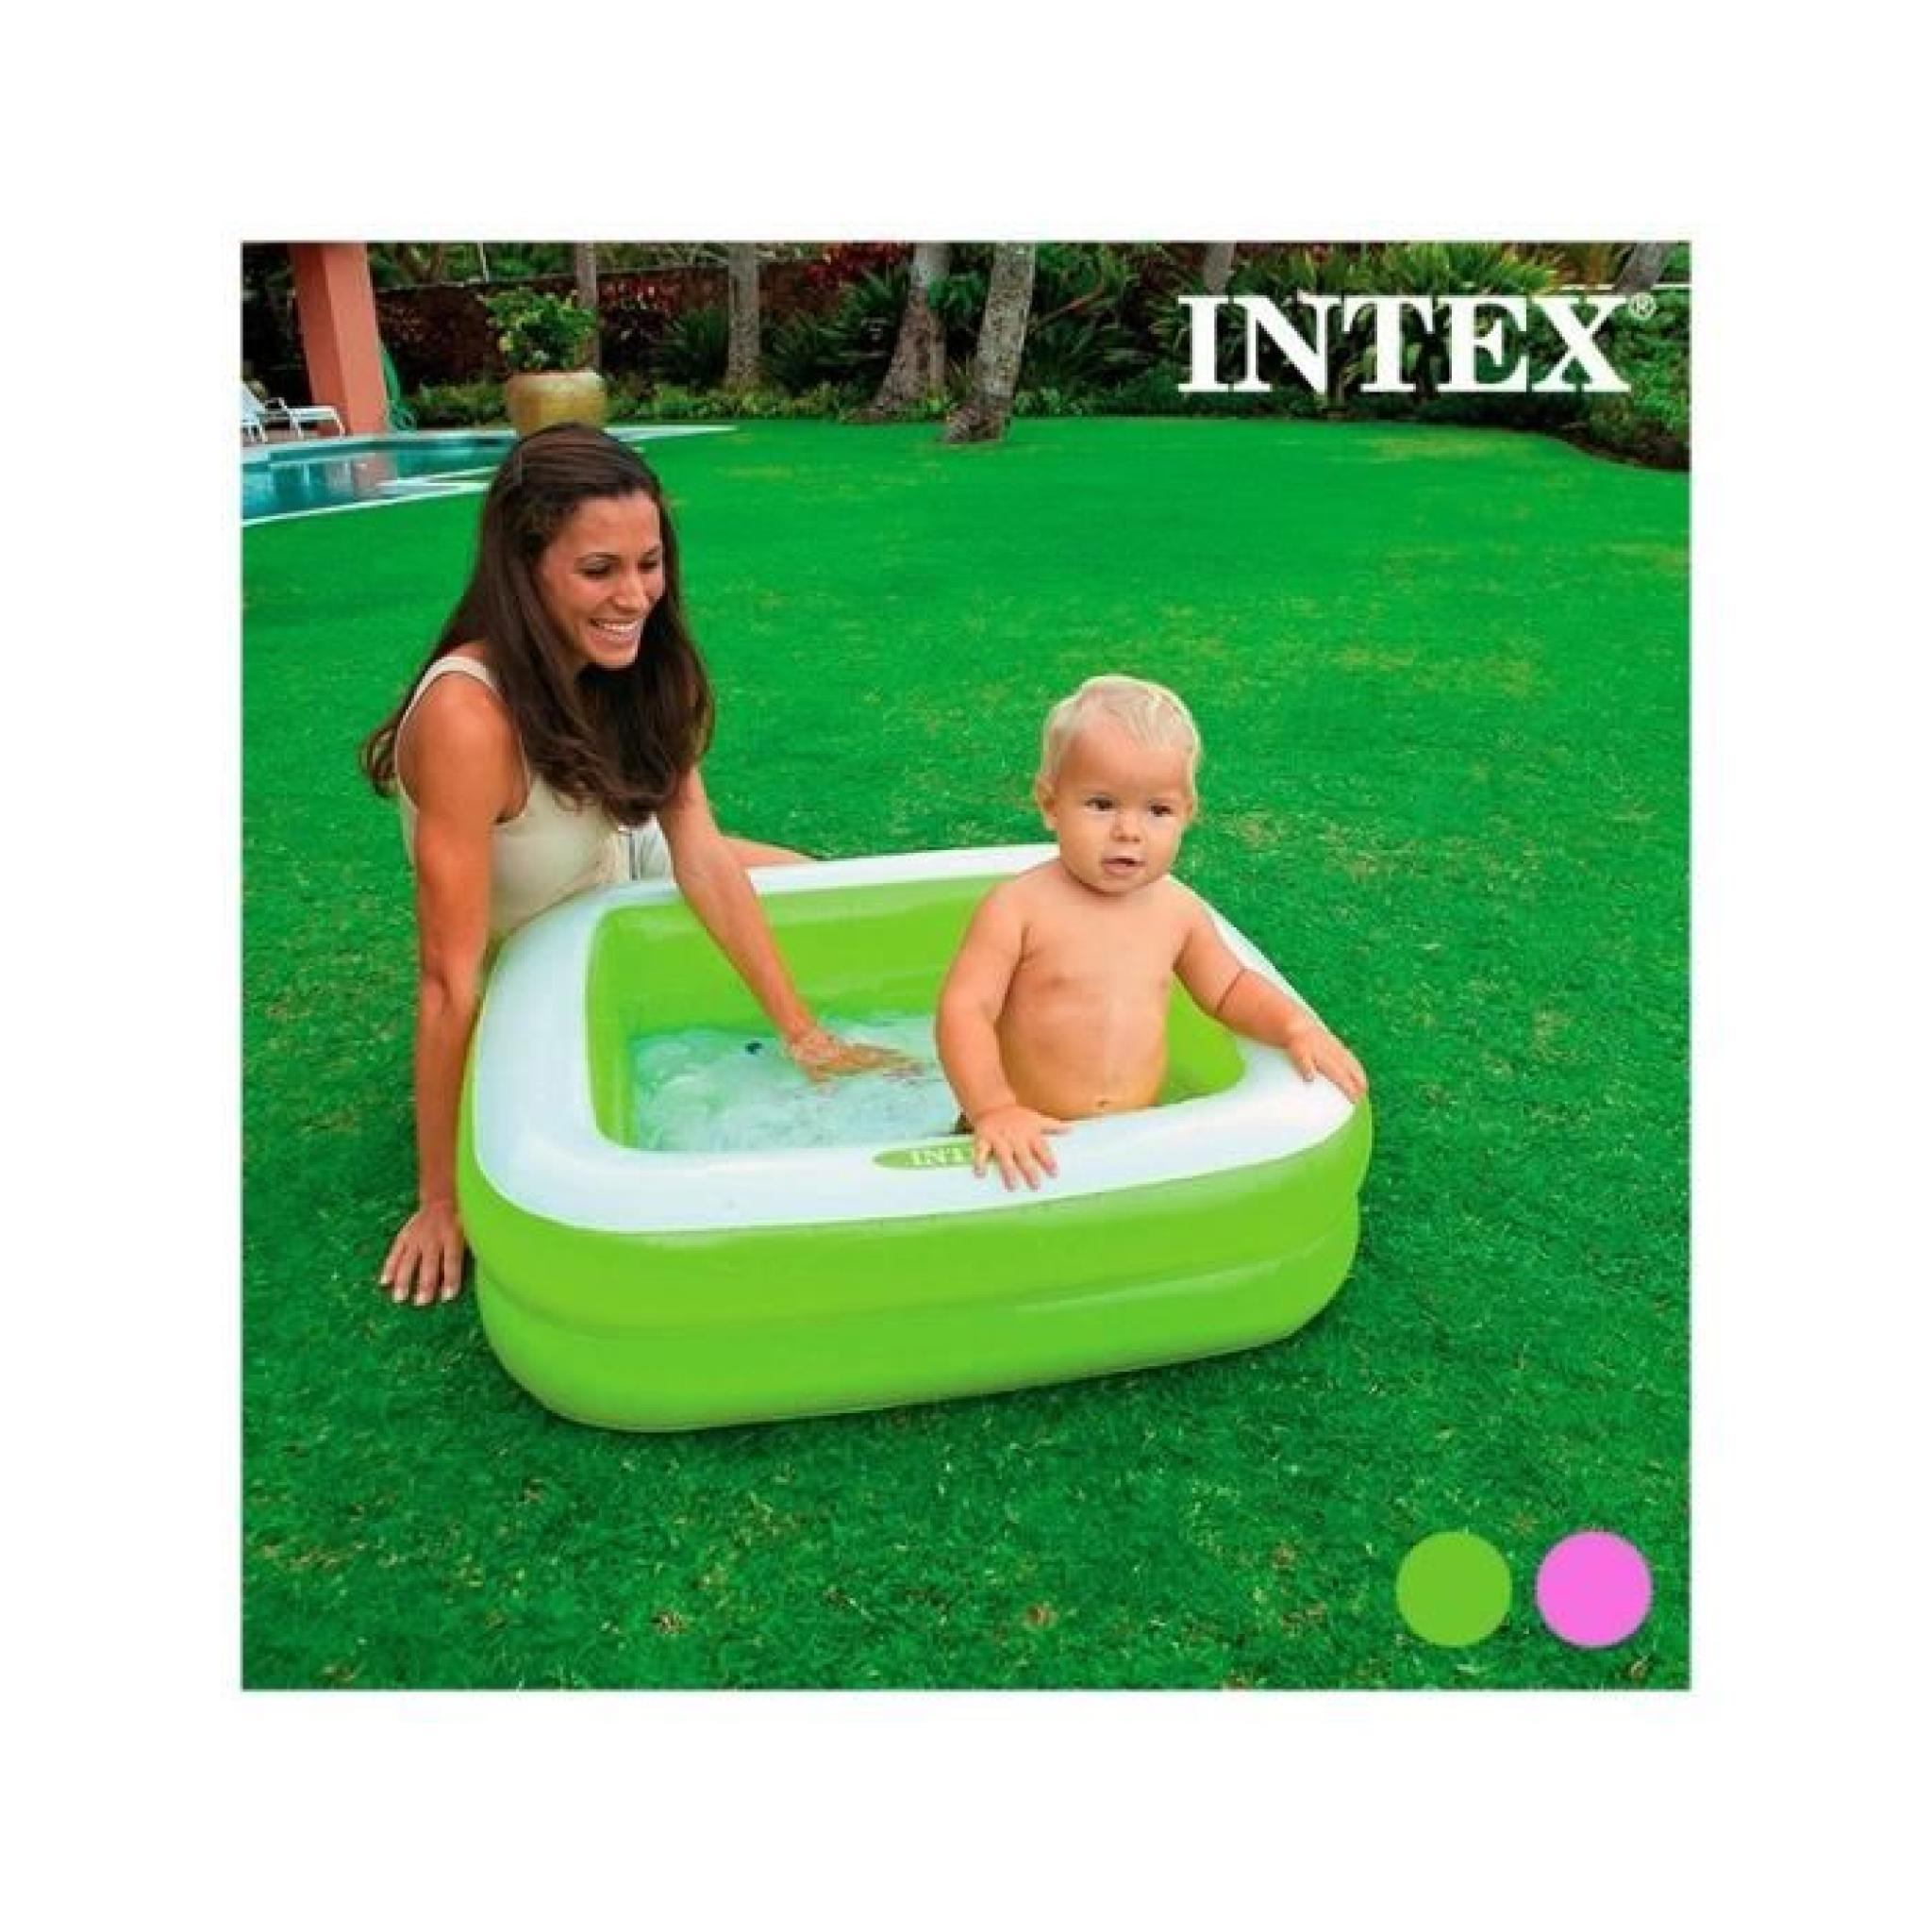 Piscine gonflable carr e pour enfants intex rose for Piscine gonflable intex